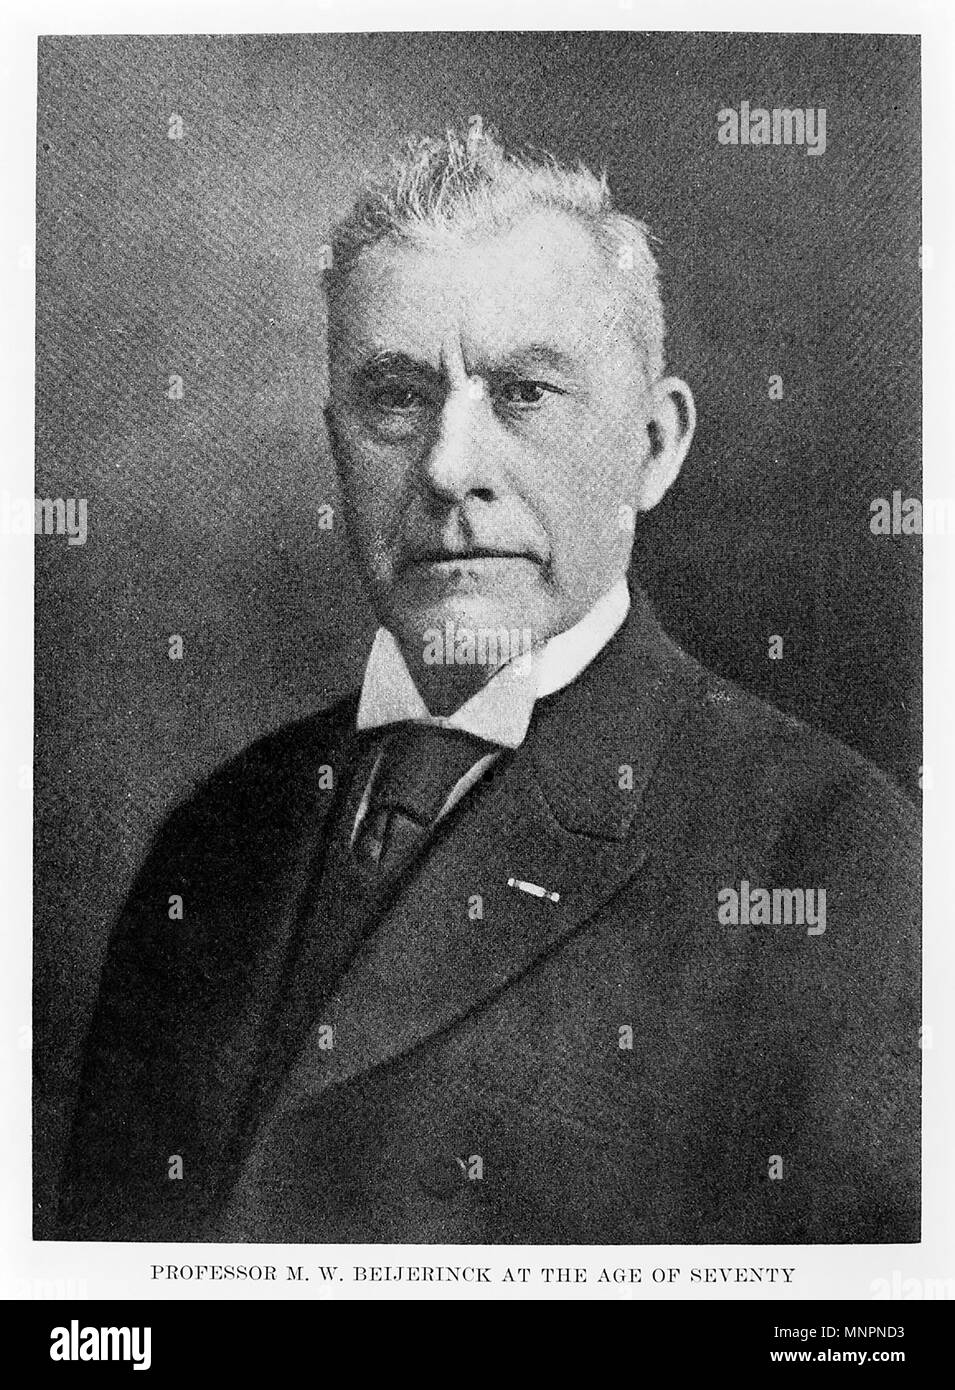 MARTINUS BEIJERINCK (1851-1931) Dutch microbiologist and botanist Stock Photo